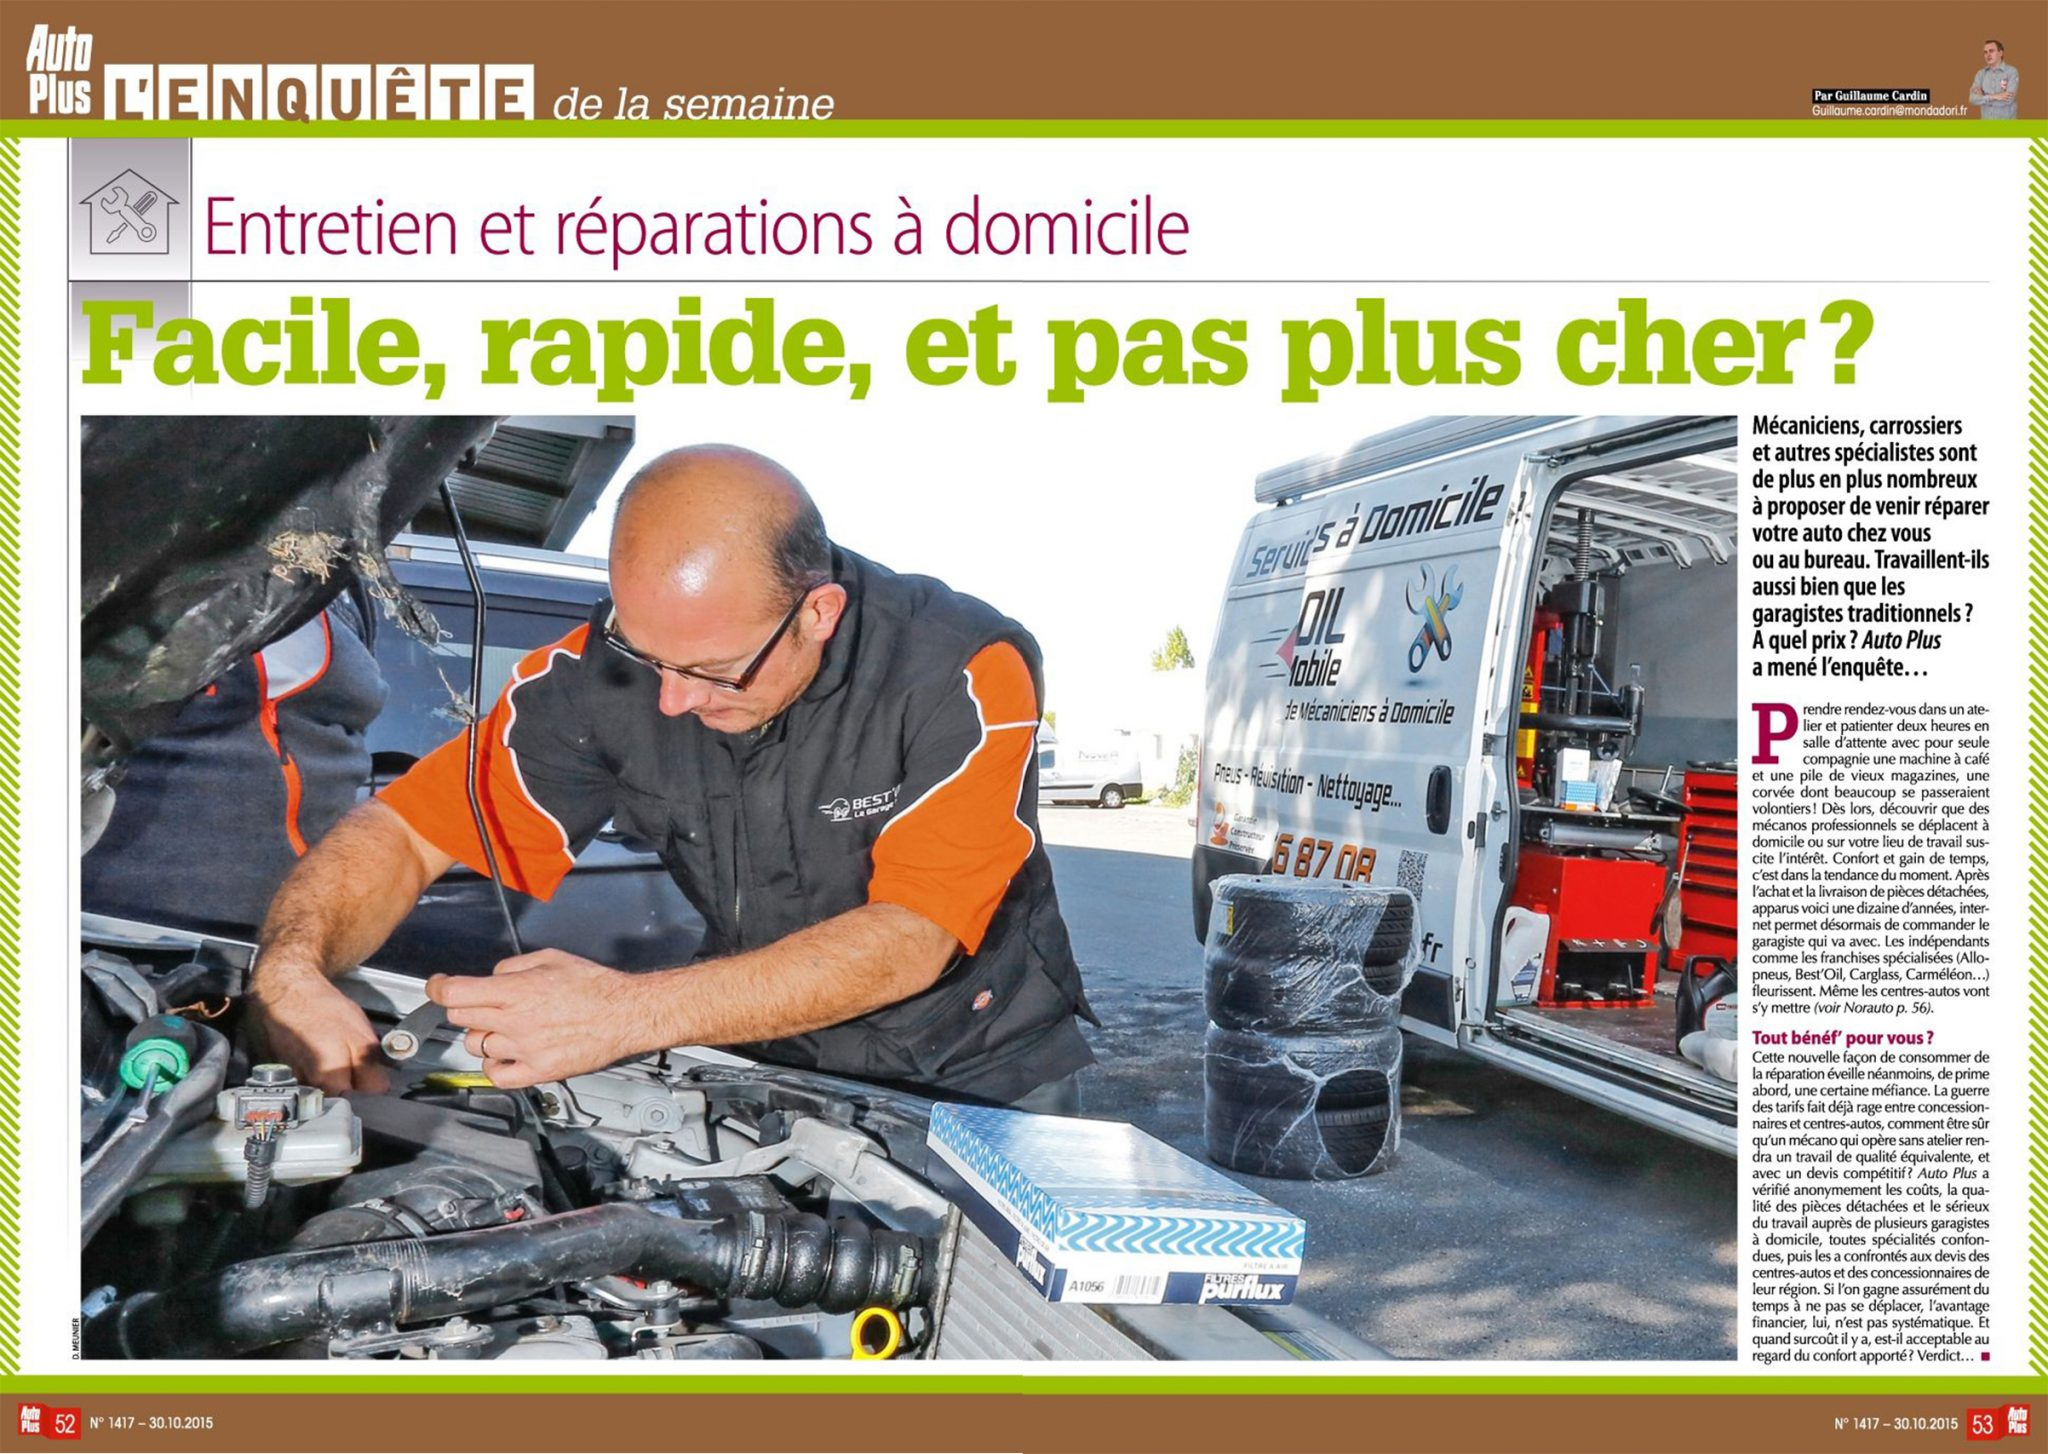 Extrait article Best'Oil dans magazine Auto Plus 2015